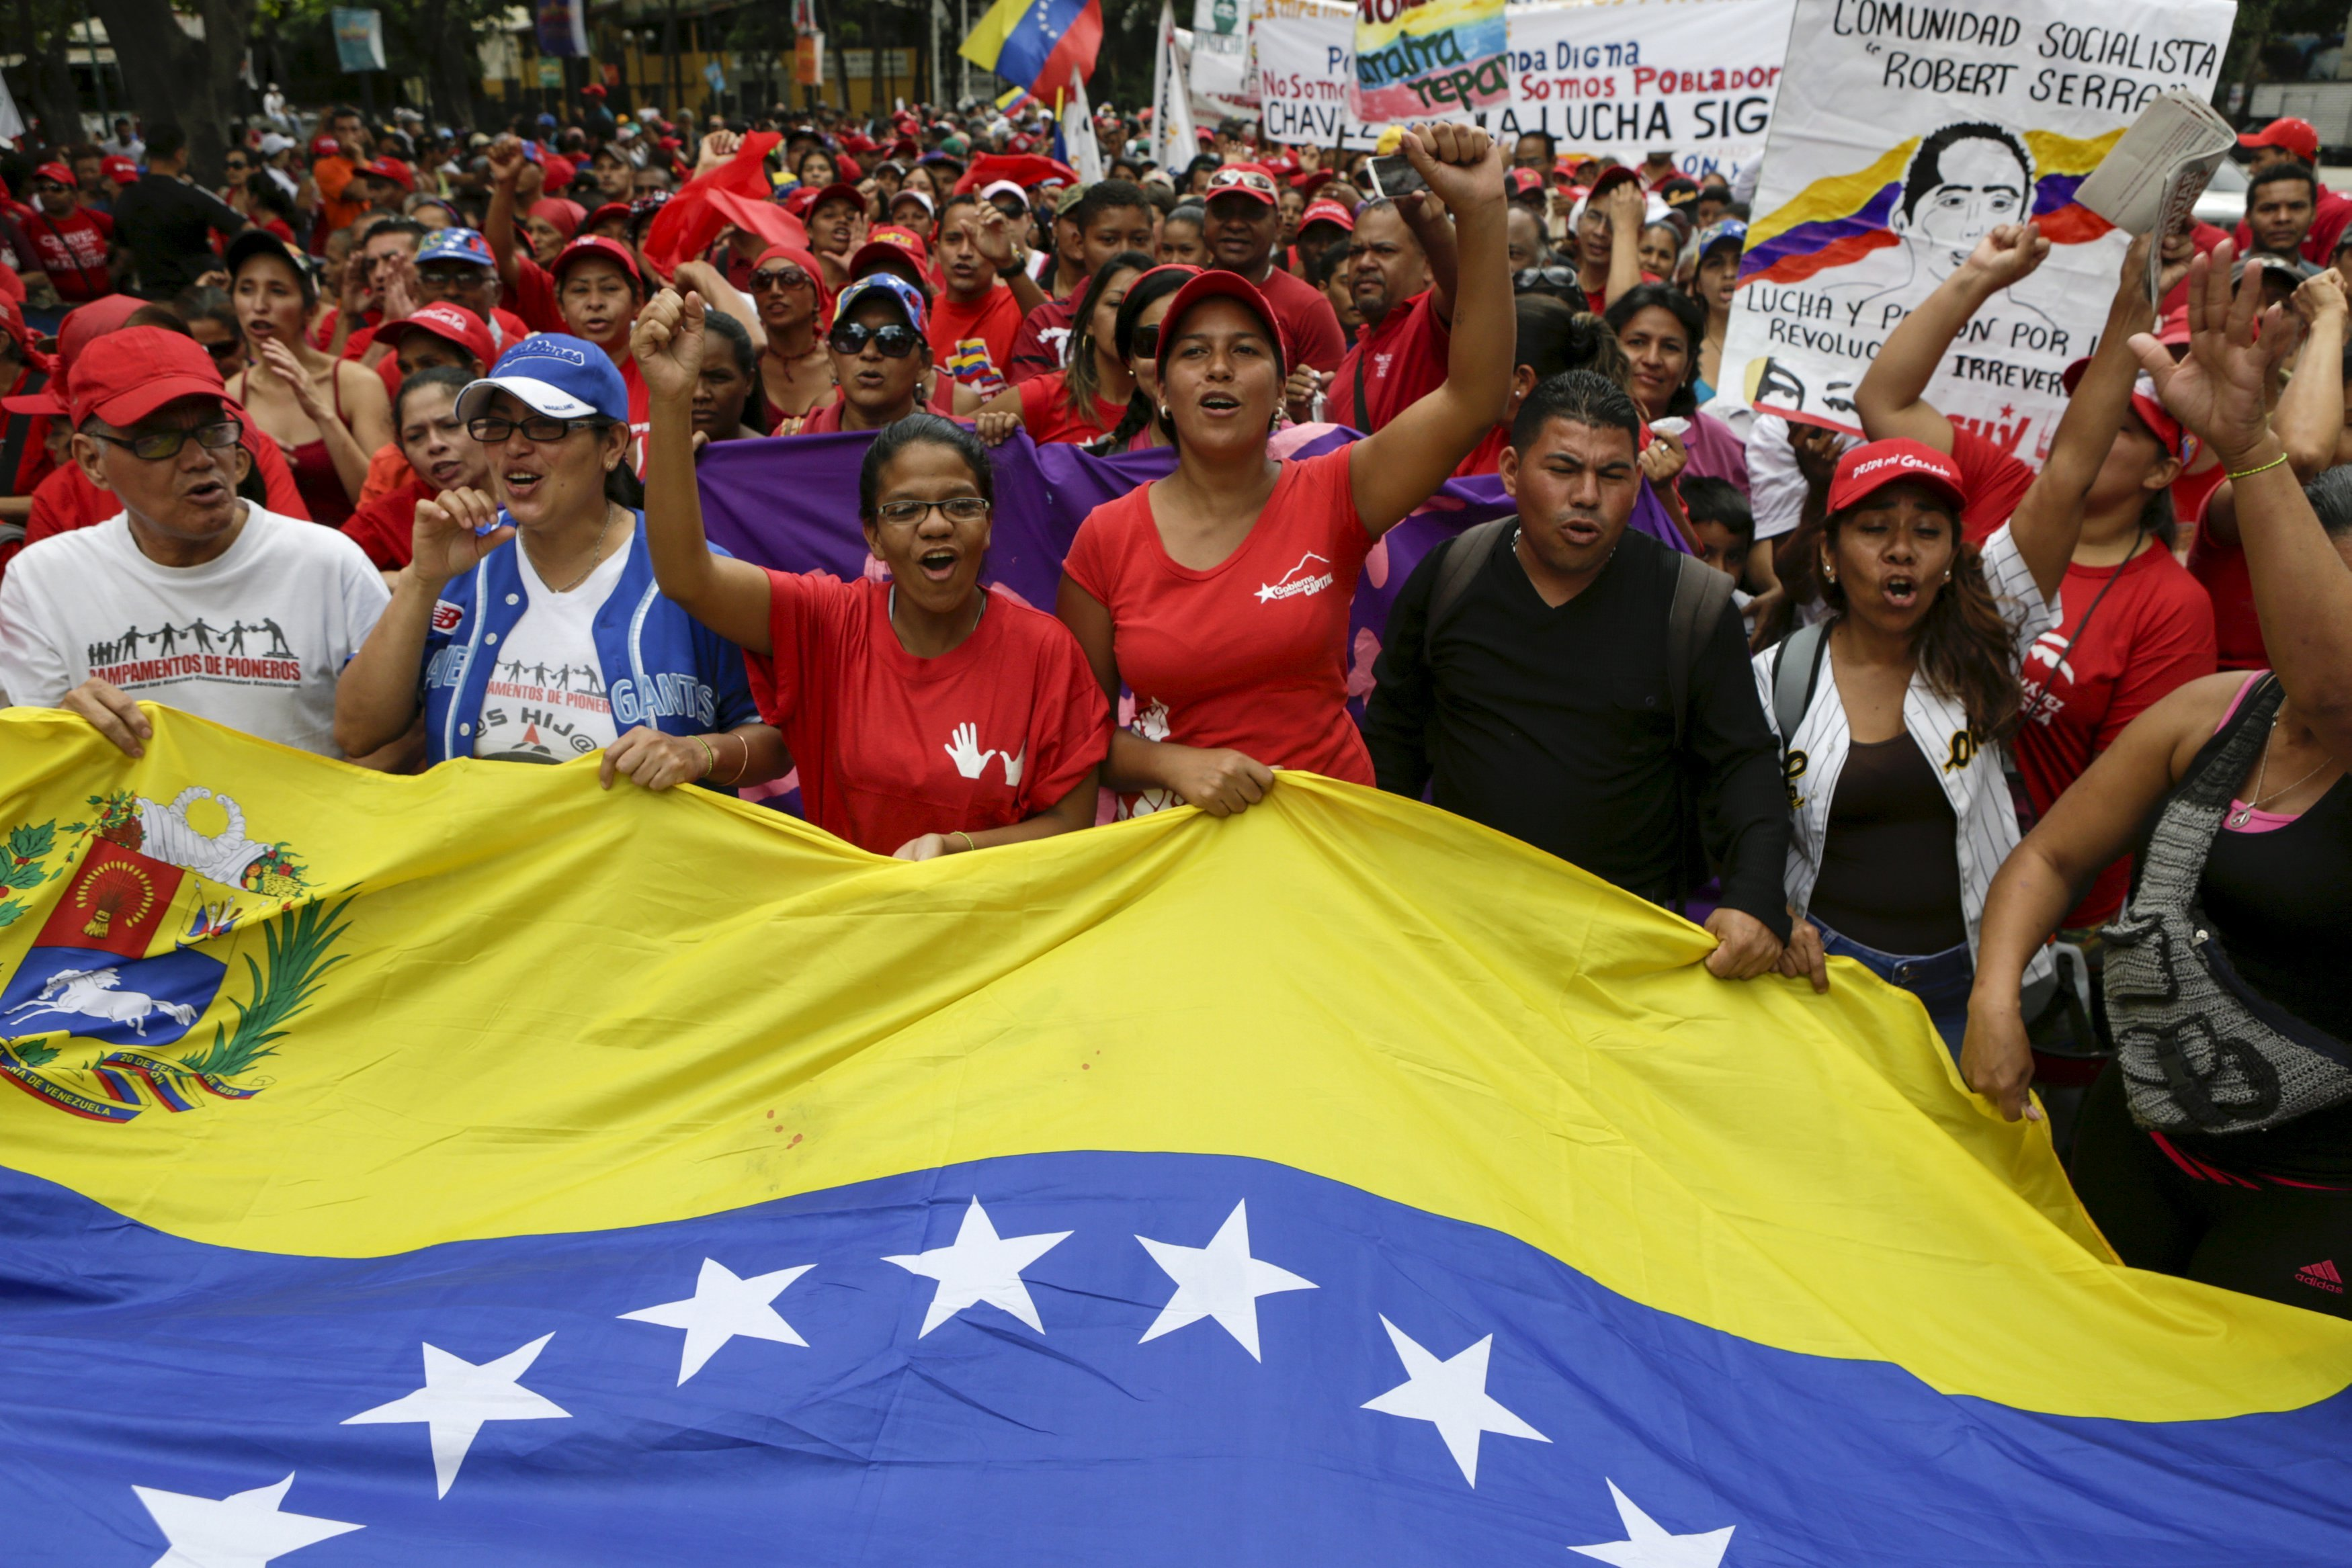 Solidarity with those fighting to defend Venezuela's Bolivarian Revolution!